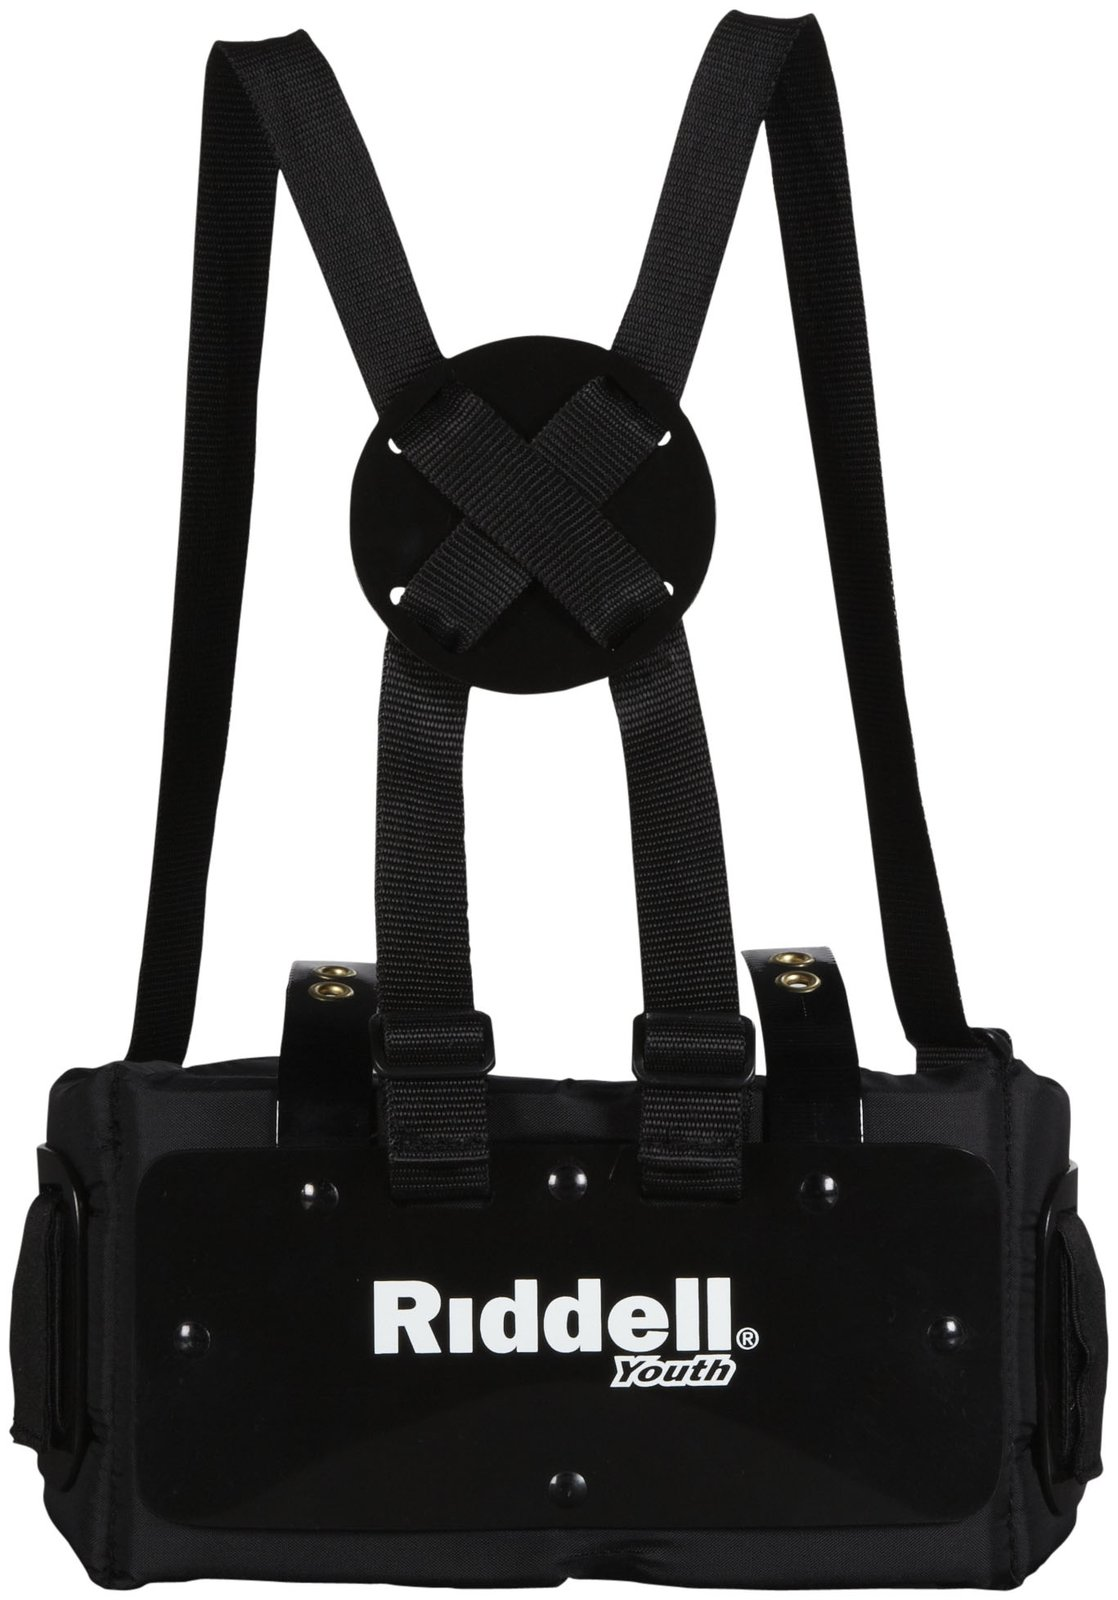 Riddell Youth Rib Cage Protector American Football